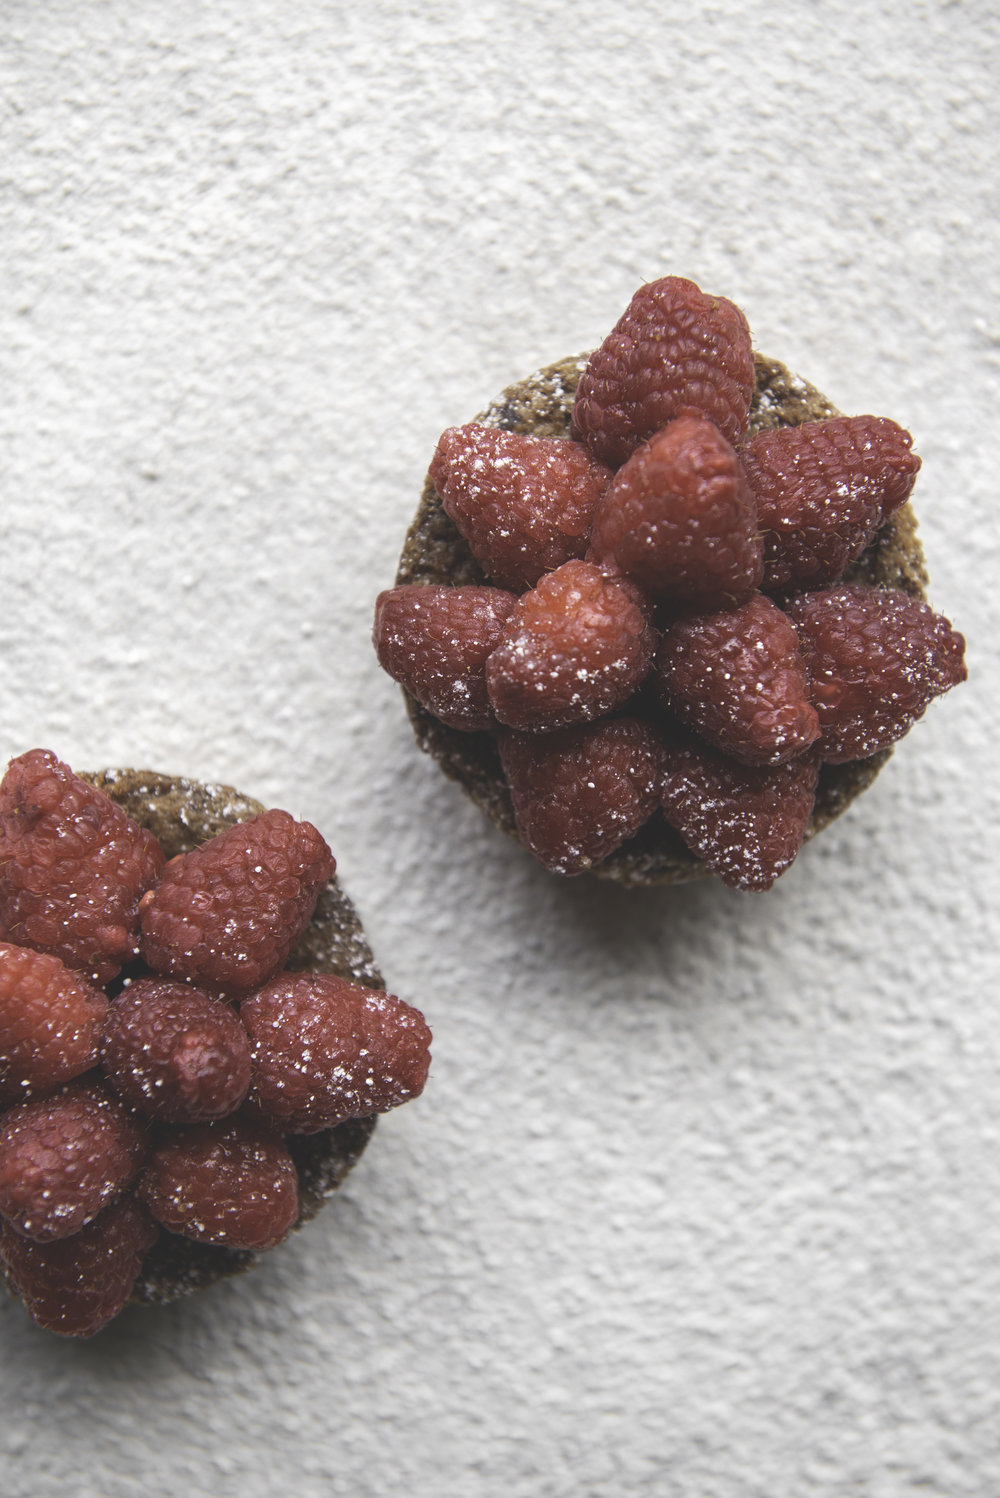 Raspberry Tart - Fresh raspberries sit atop a salty, brown-butter filling with a classic sucree shell. We love this treat for its minimalism, yet it doesn't skimp on the flavor.